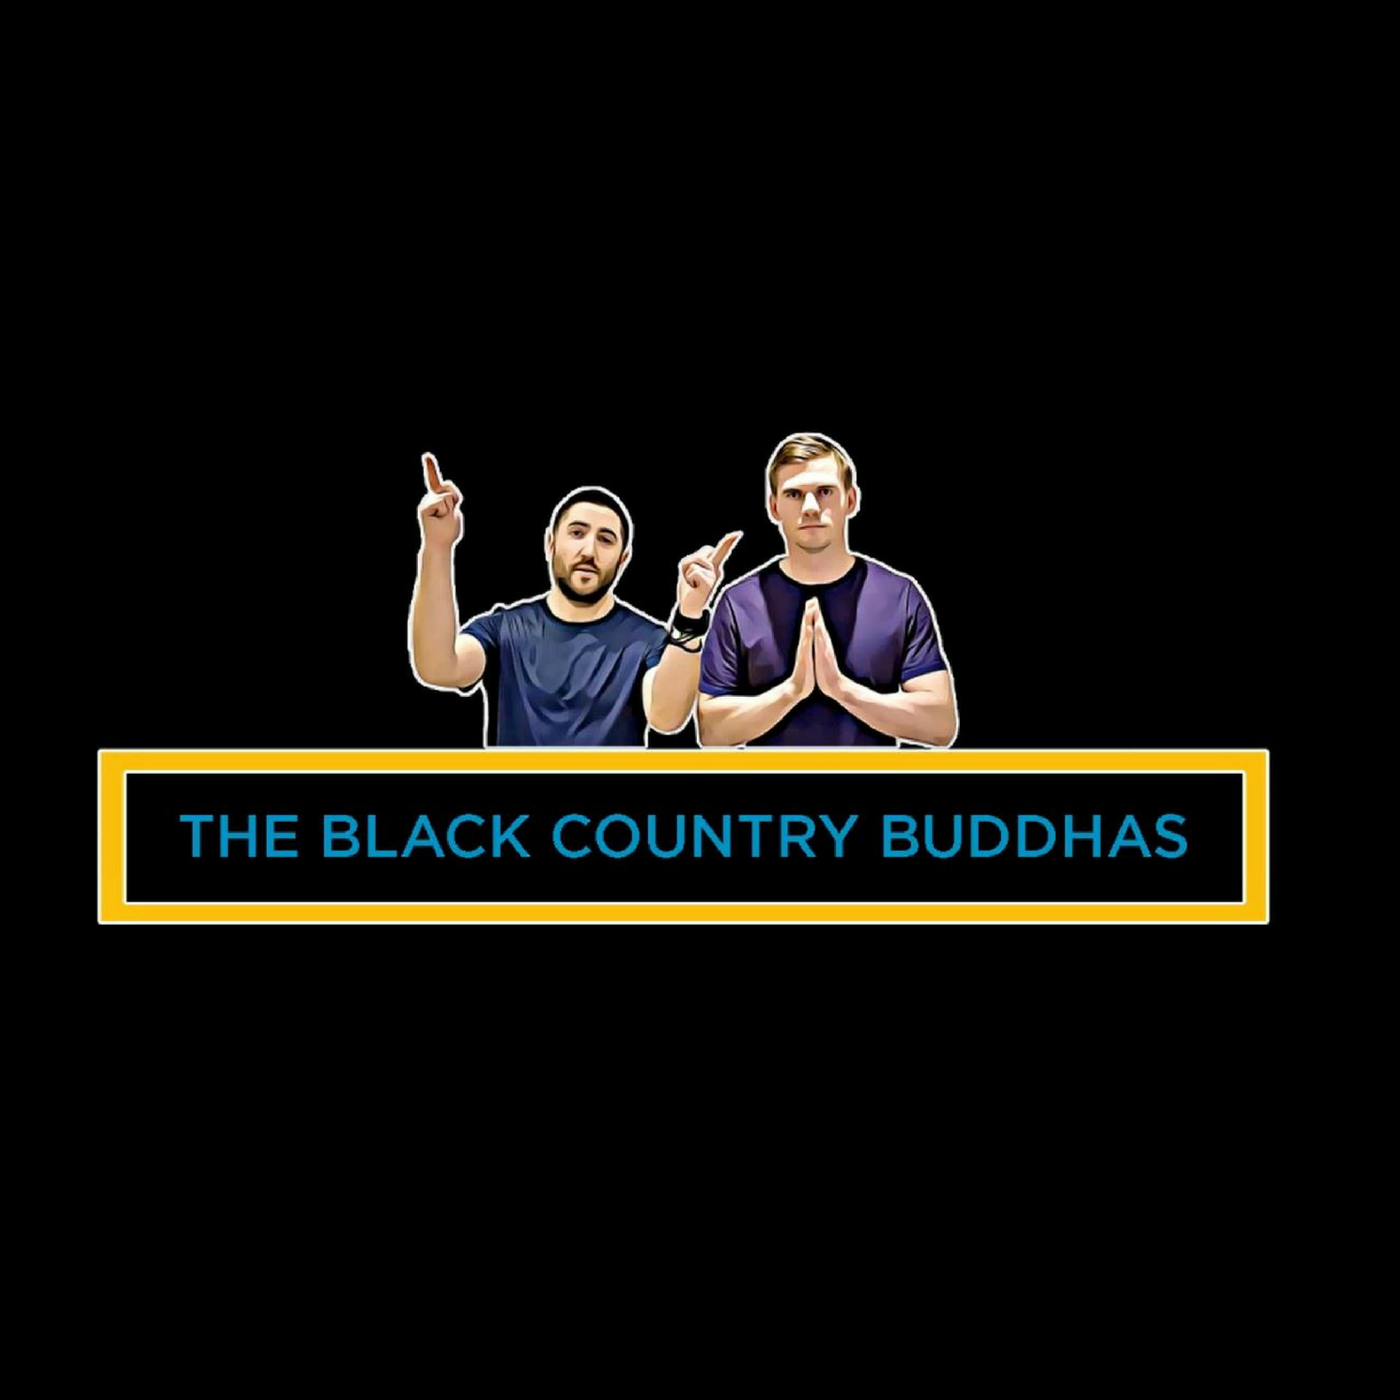 The Black Country Buddhas Podcast